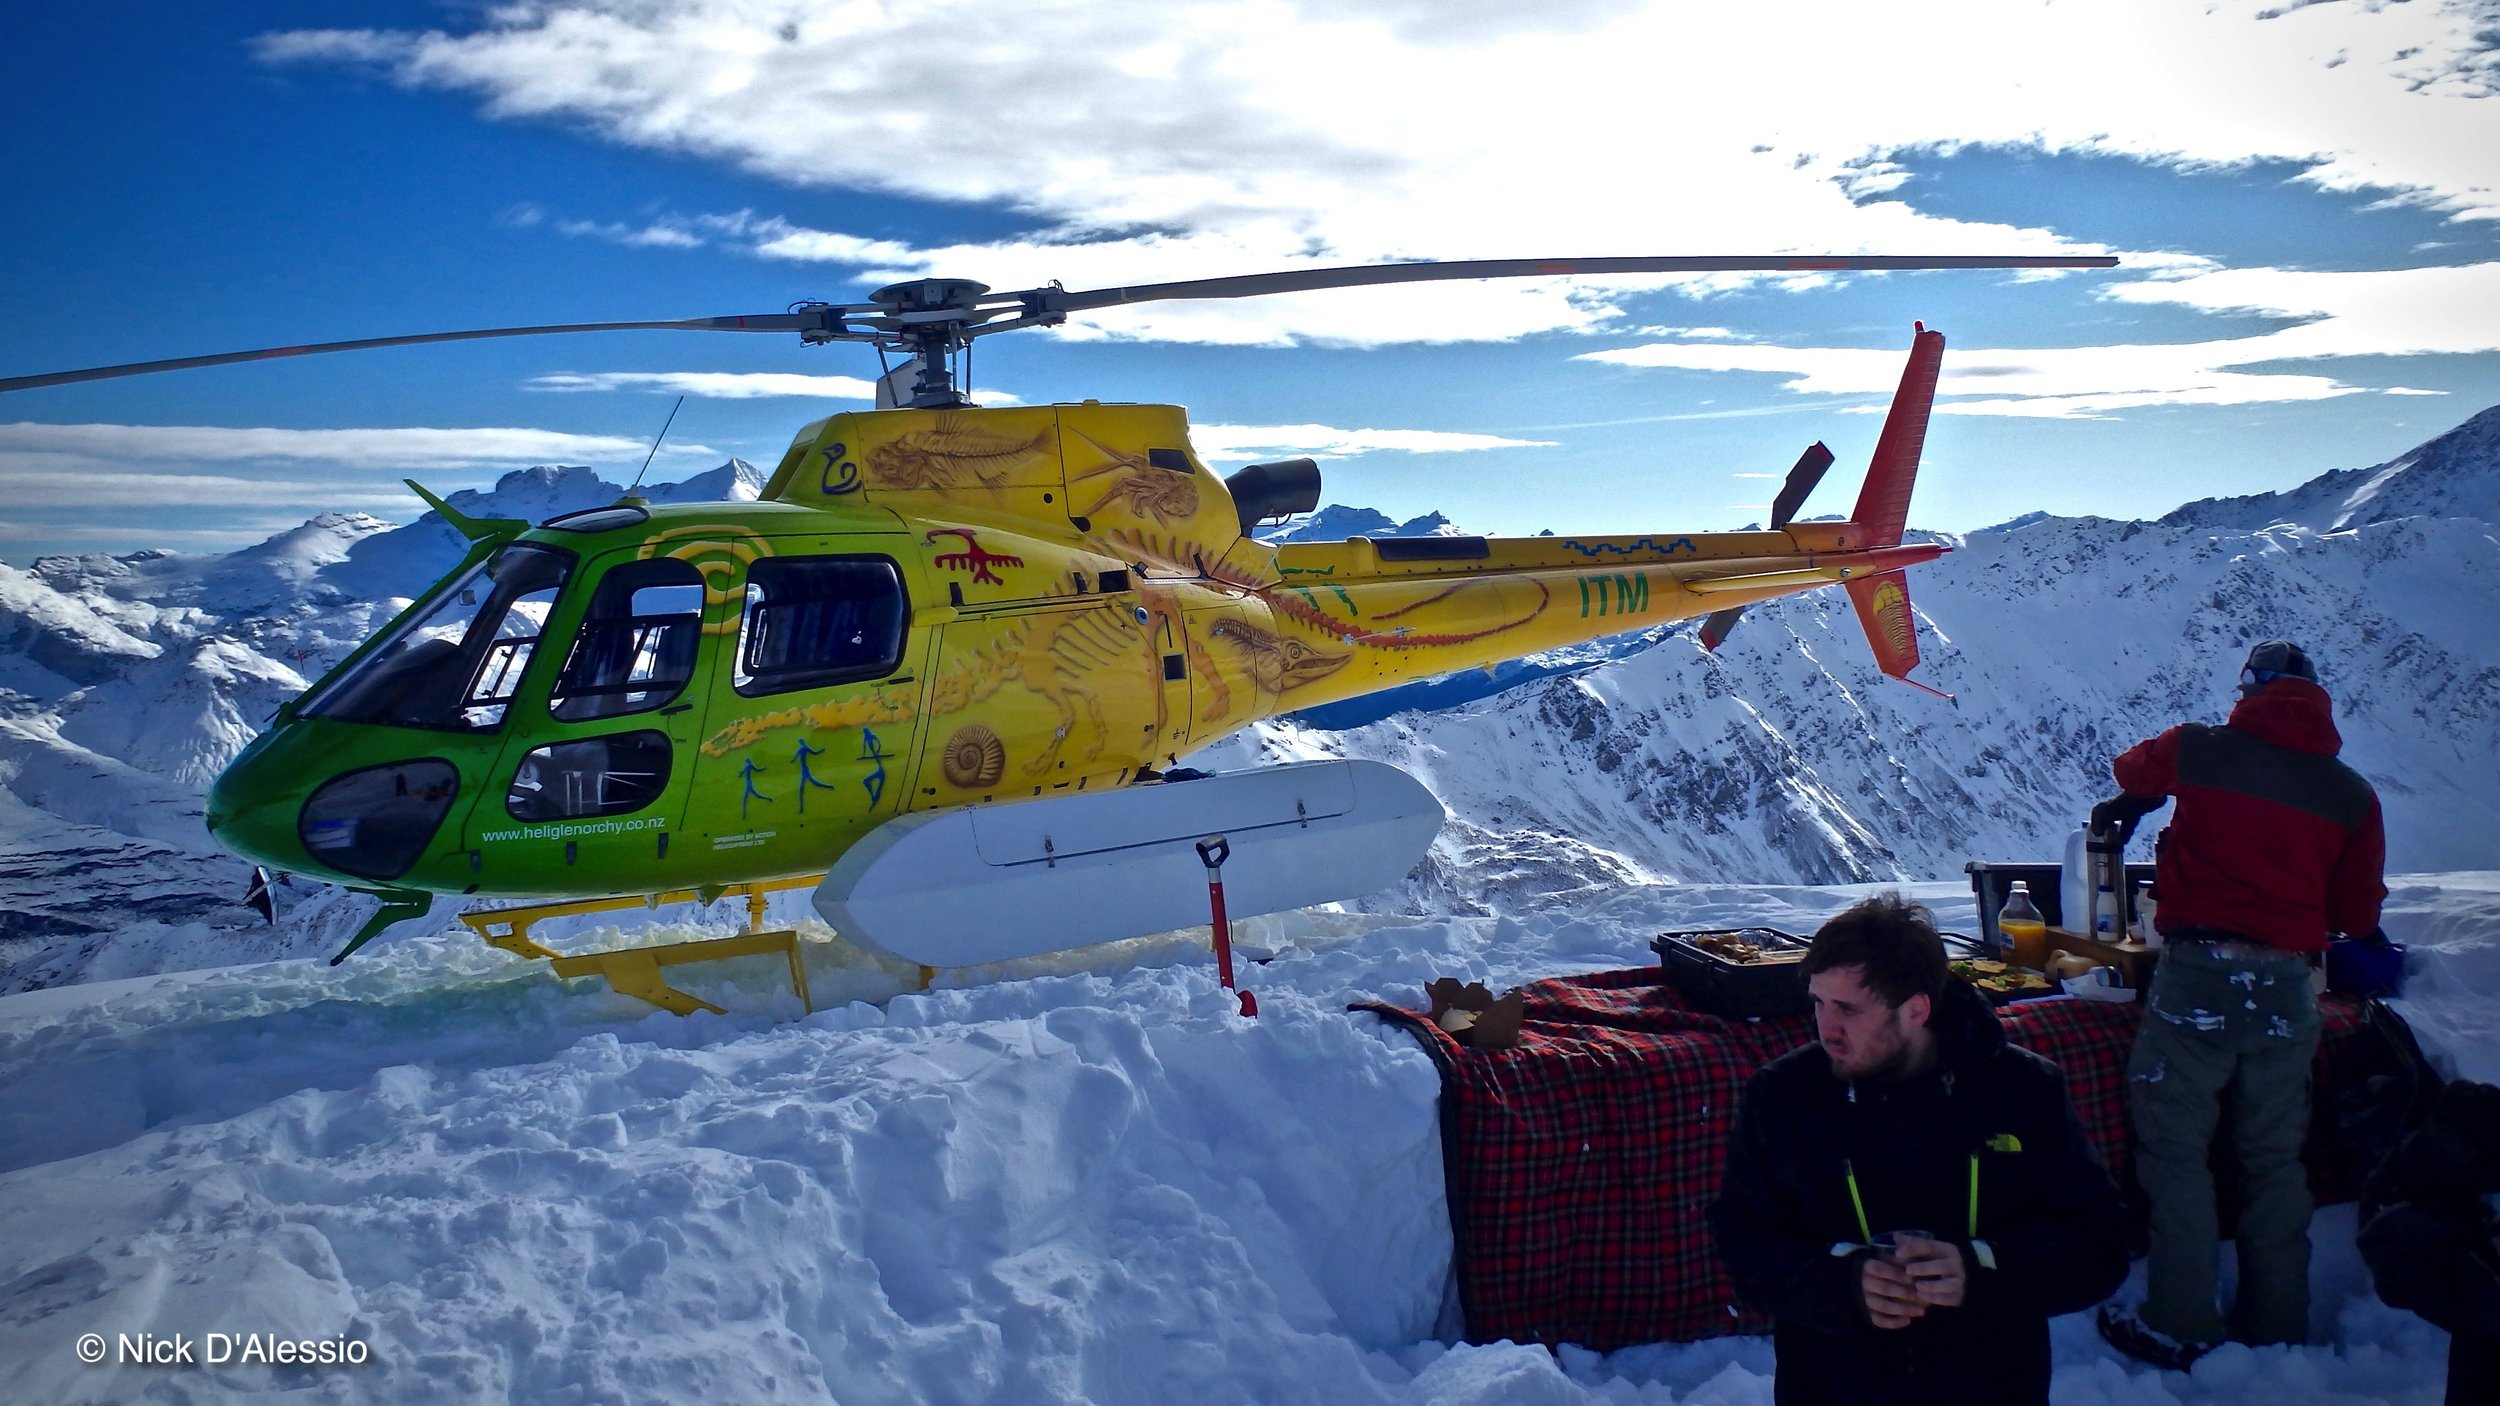 Heli ski lunch time. Photo by Ski Guide Nick D'Alessio